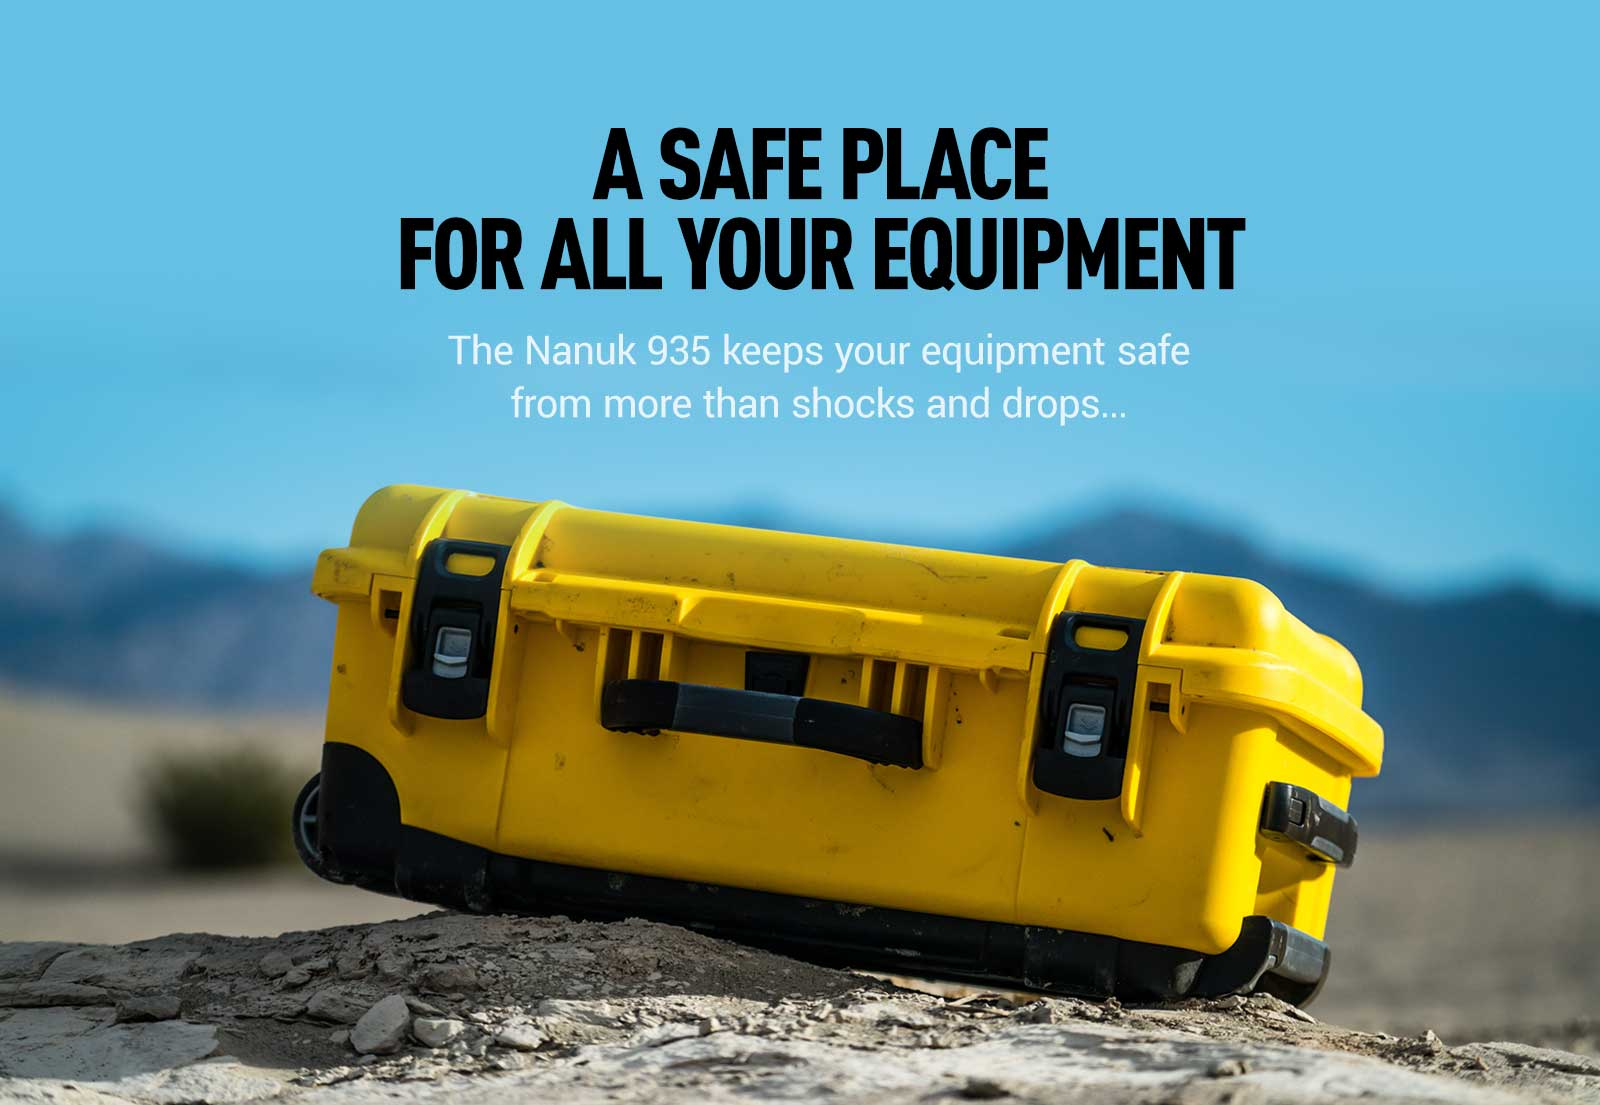 Nanuk 935 is a safe case for equipment